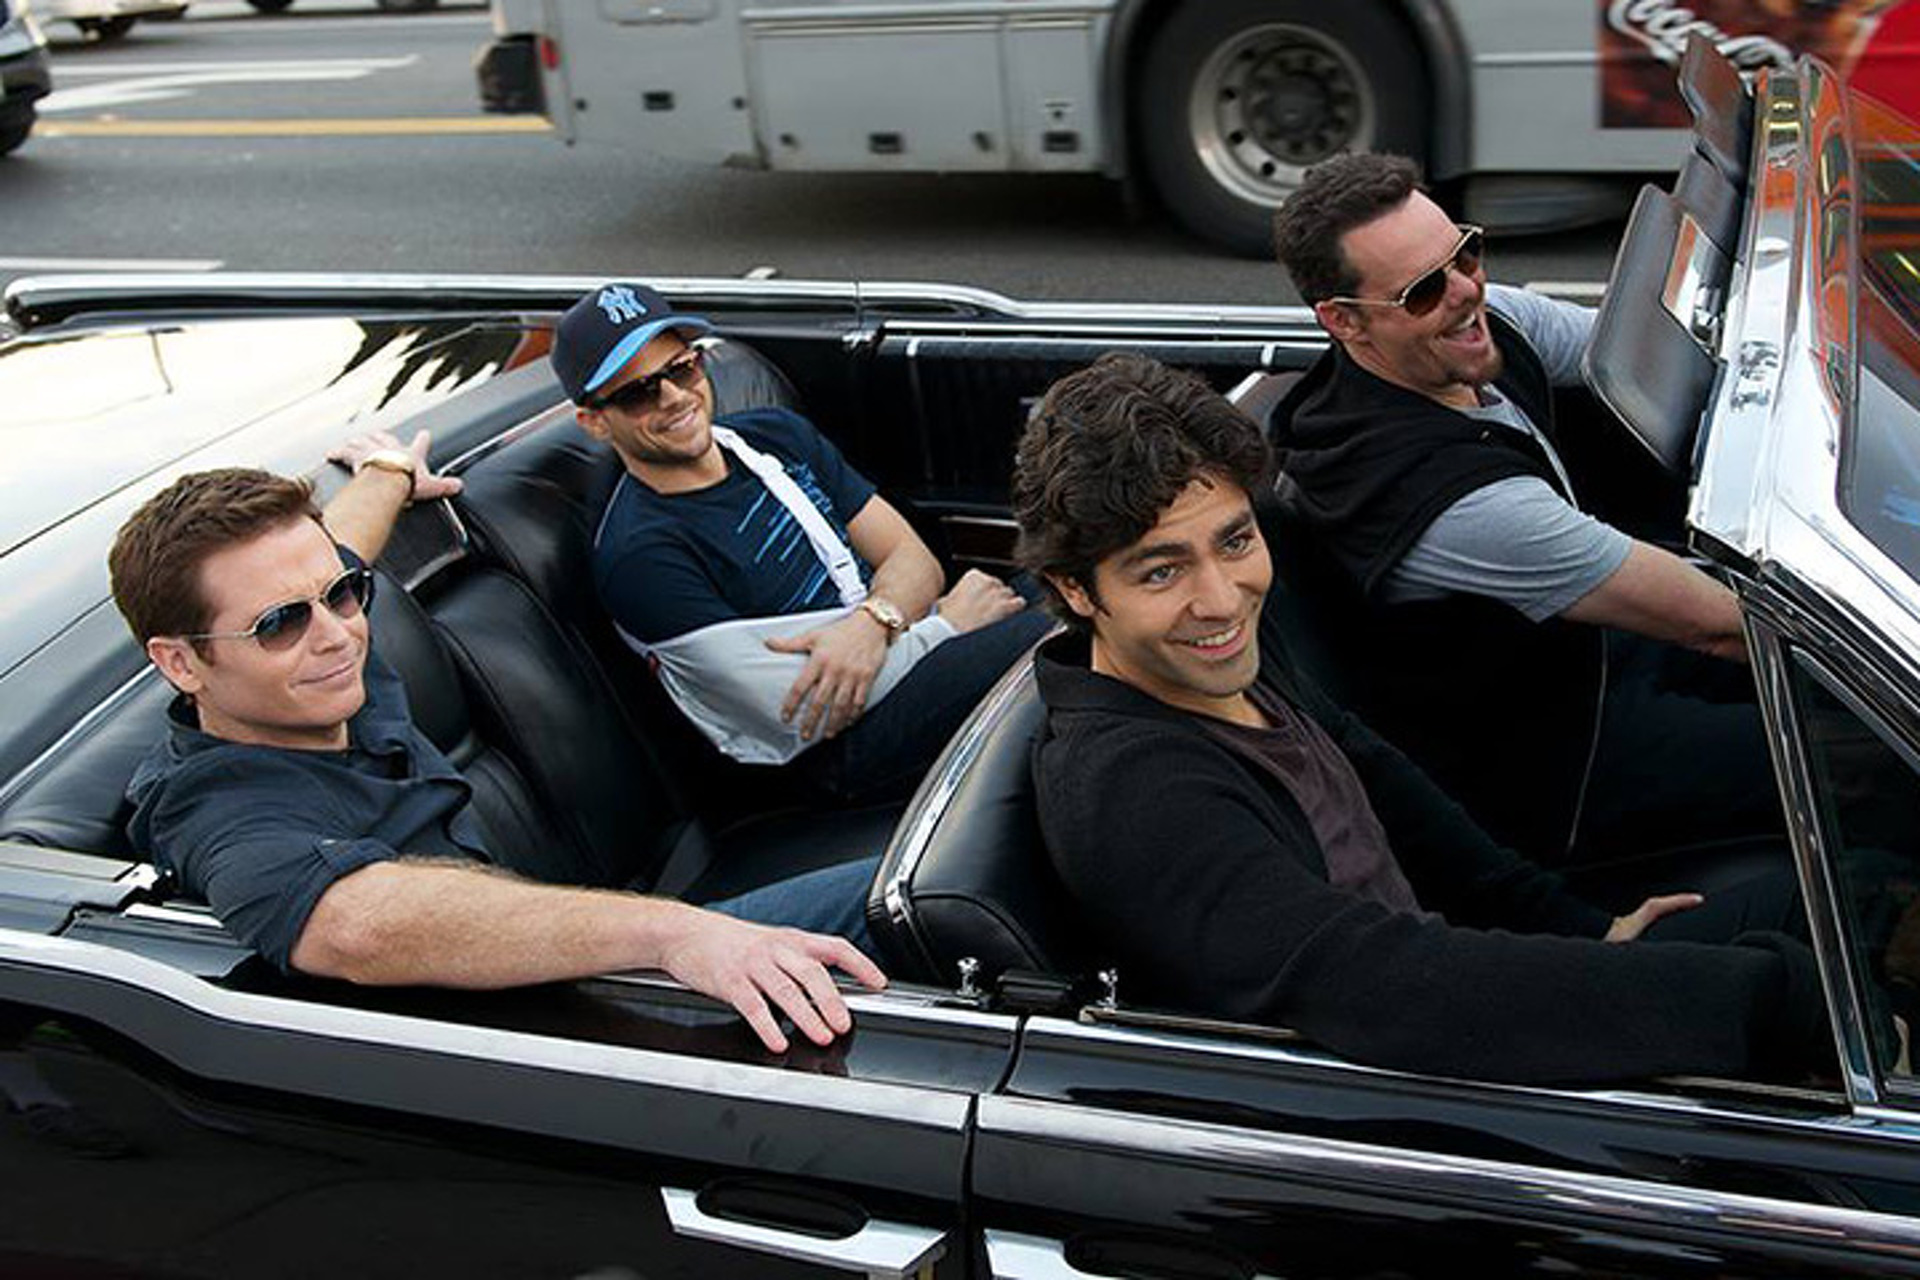 13 Of The Best Cars From Entourage